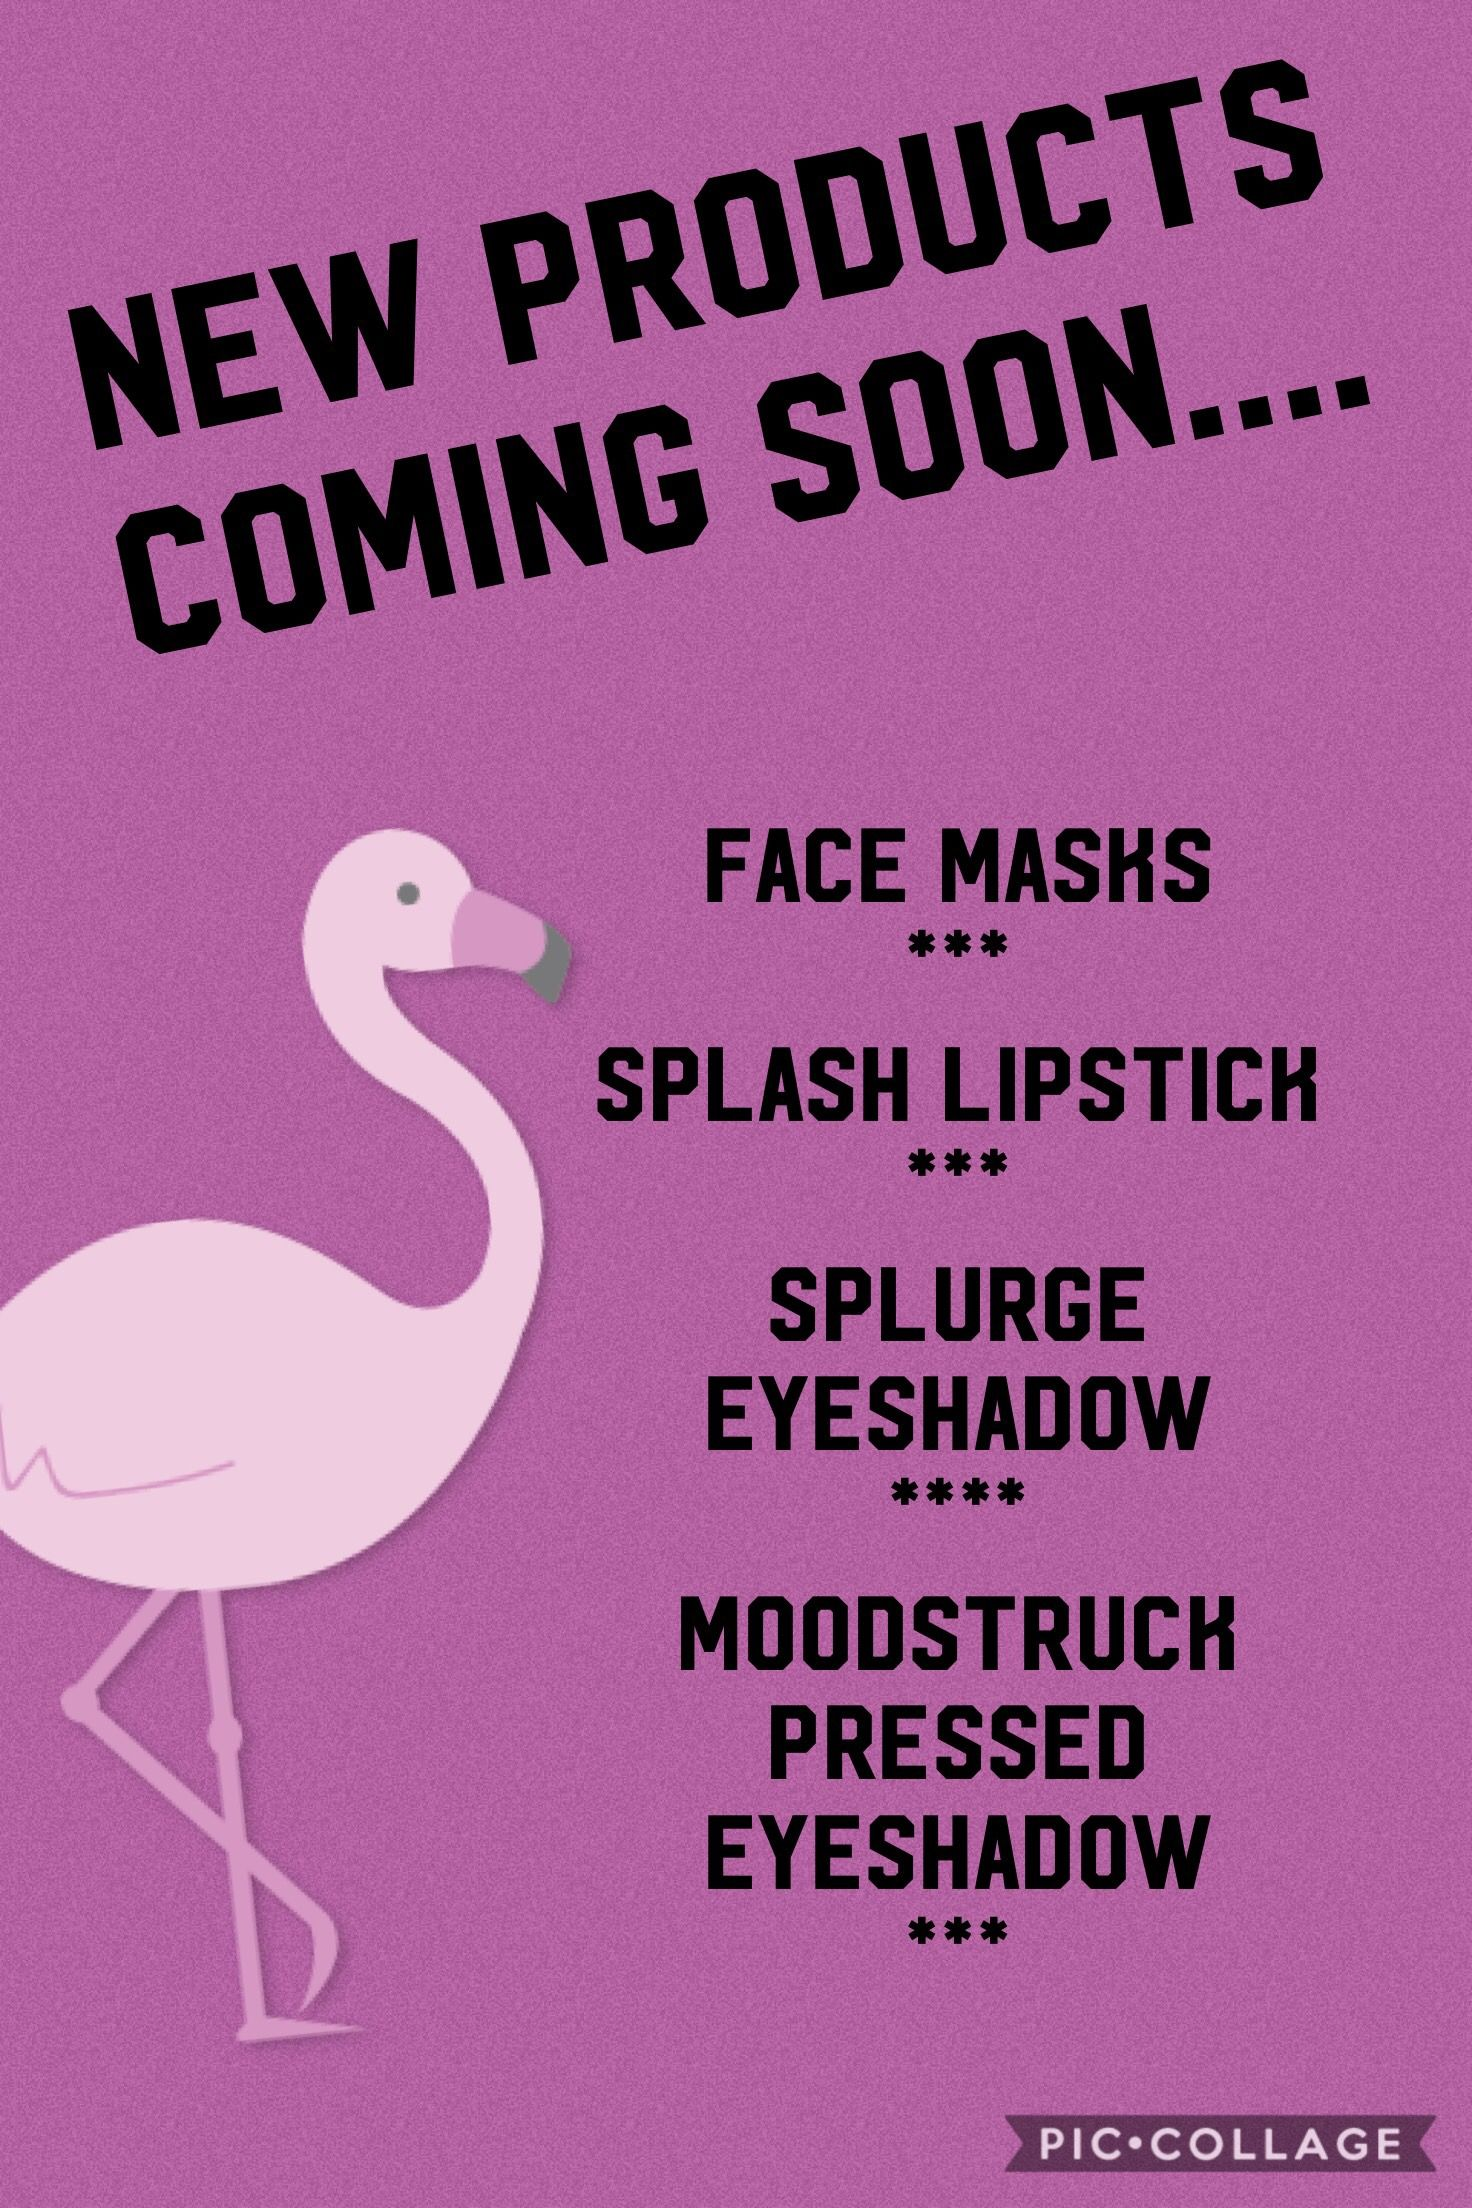 New Younique products coming soon! Recently launched epic